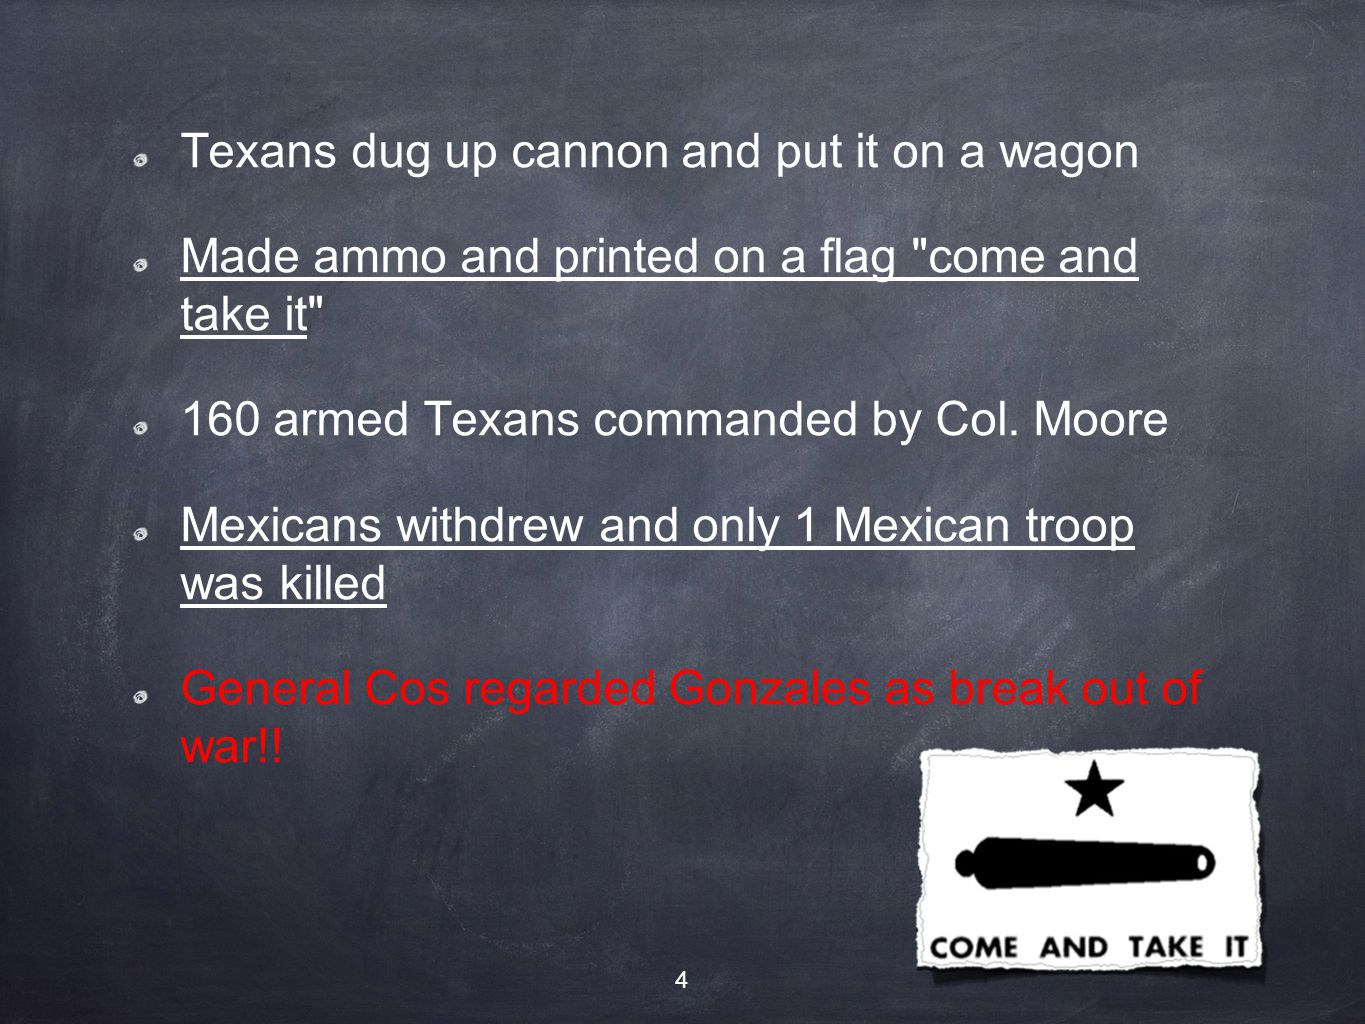 On to San Antonio 120 Texans took over Goliad garrison after the battle of Gonzales After the defeat of Mexicans at Goliad and Gonzales the Texans thought they would be easy to beat Large army remained in San Antonio with Gen.